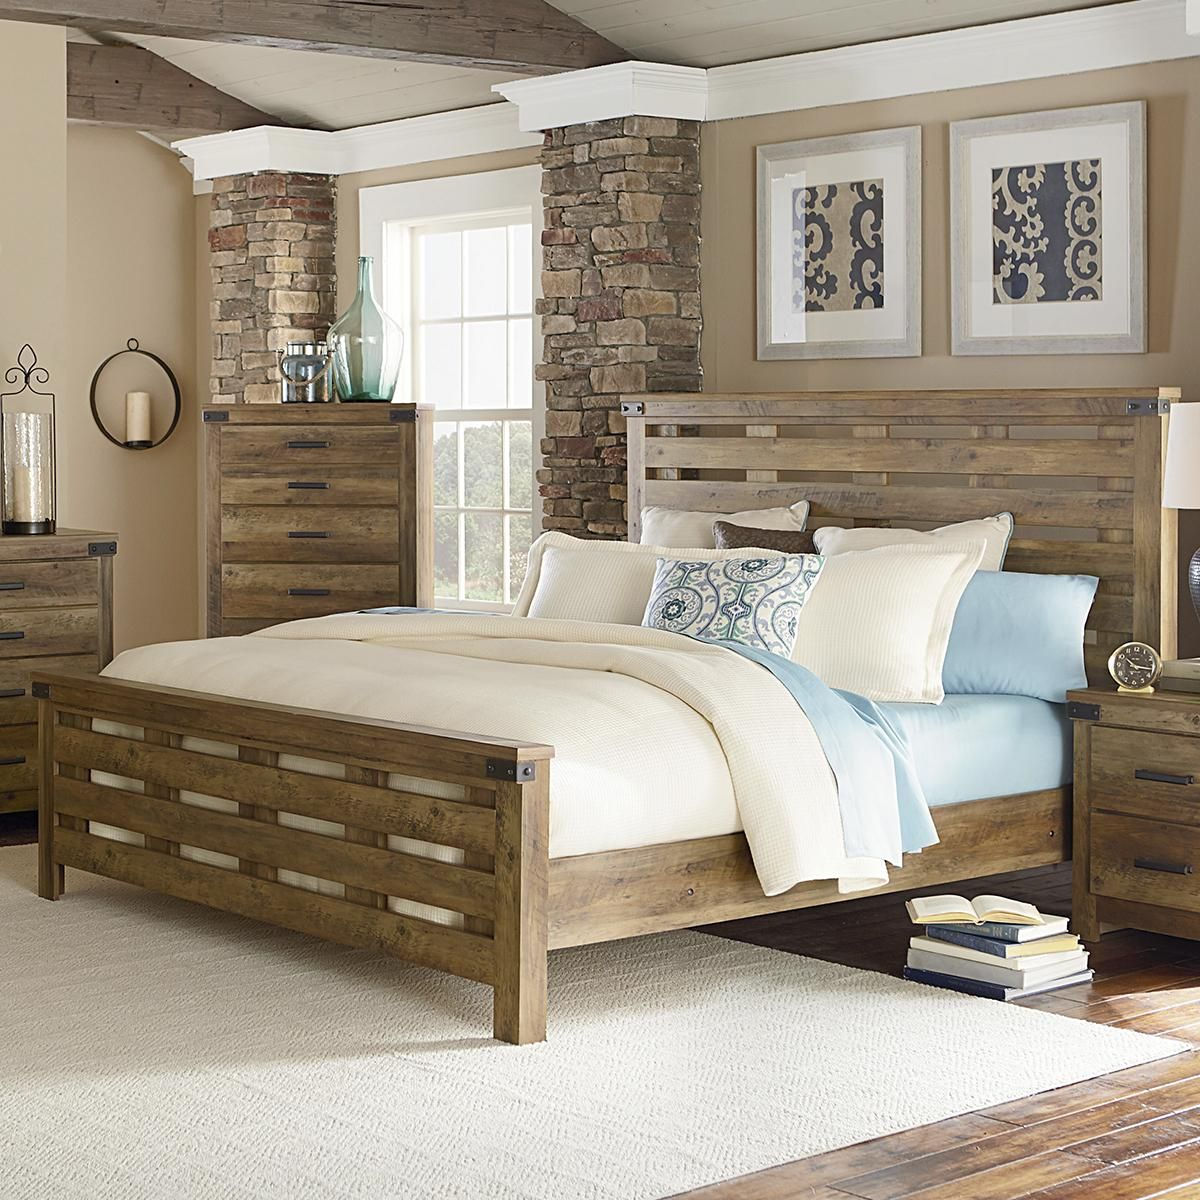 Product Main Image 0 Rustic bedroom design, Standard